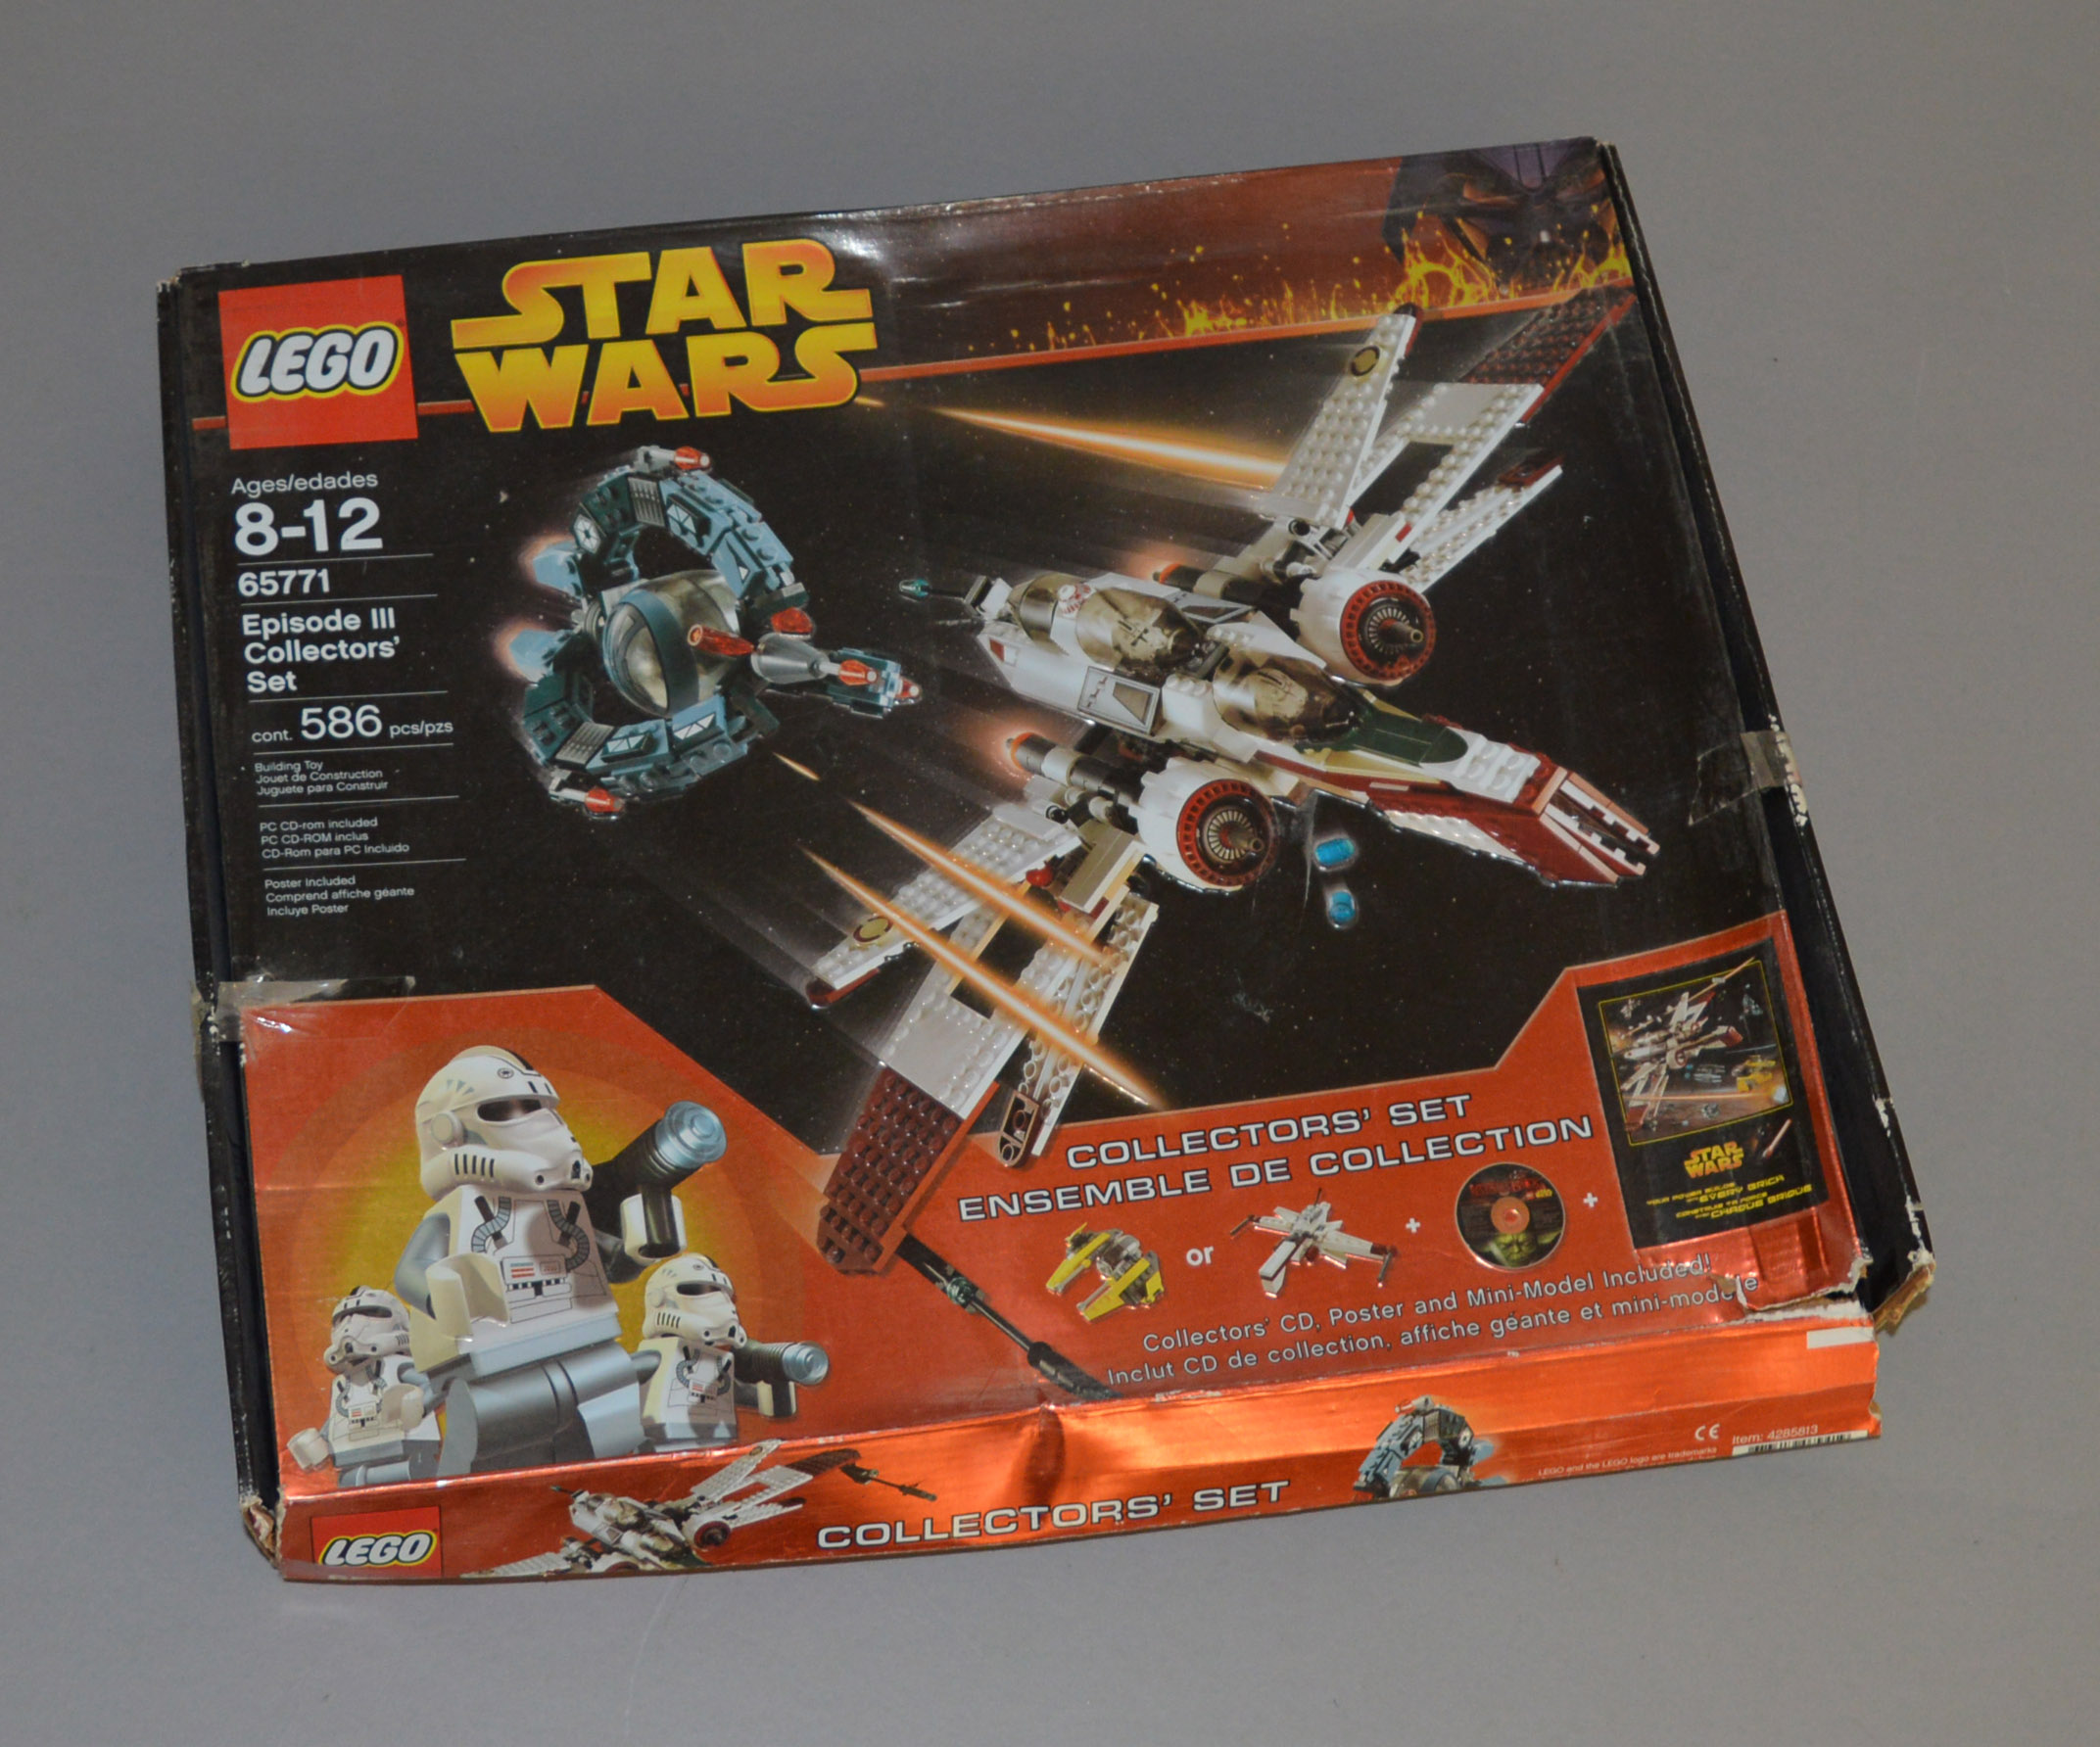 Lot 31 - Lego Star Wars 65771 'Episode III Collectors' Set', in generally F, somewhat dusty box,